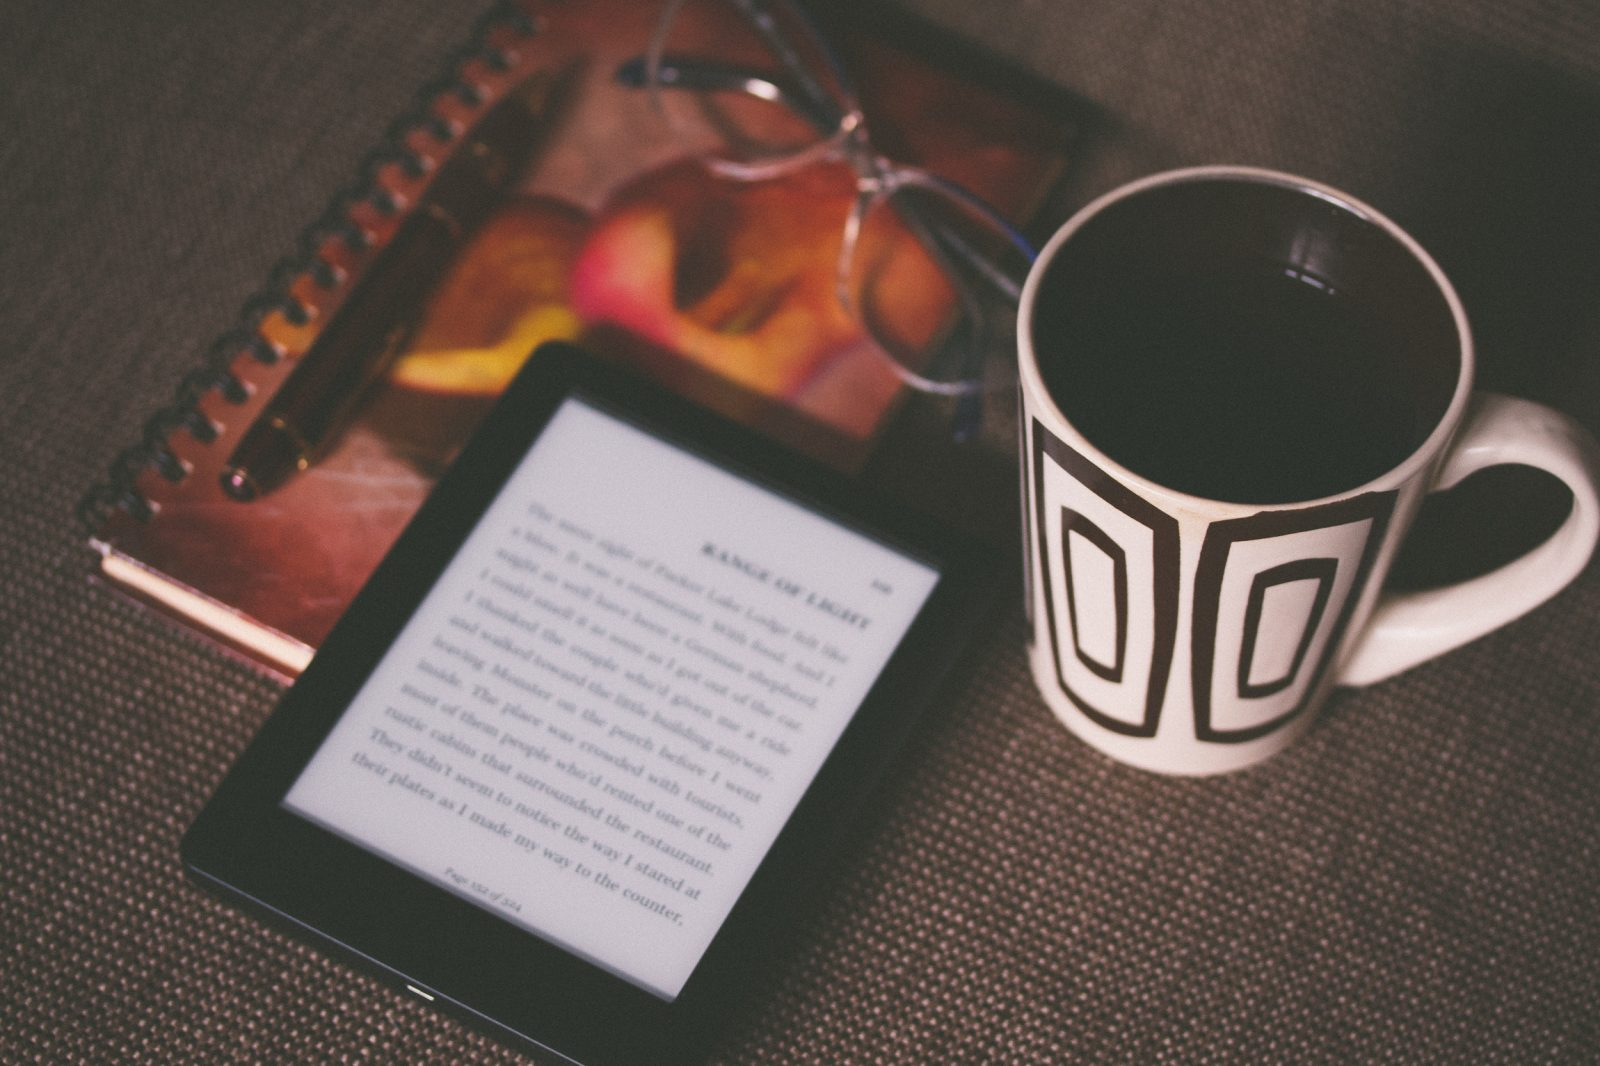 An ereader and coffee on table next to a notebook and glasses